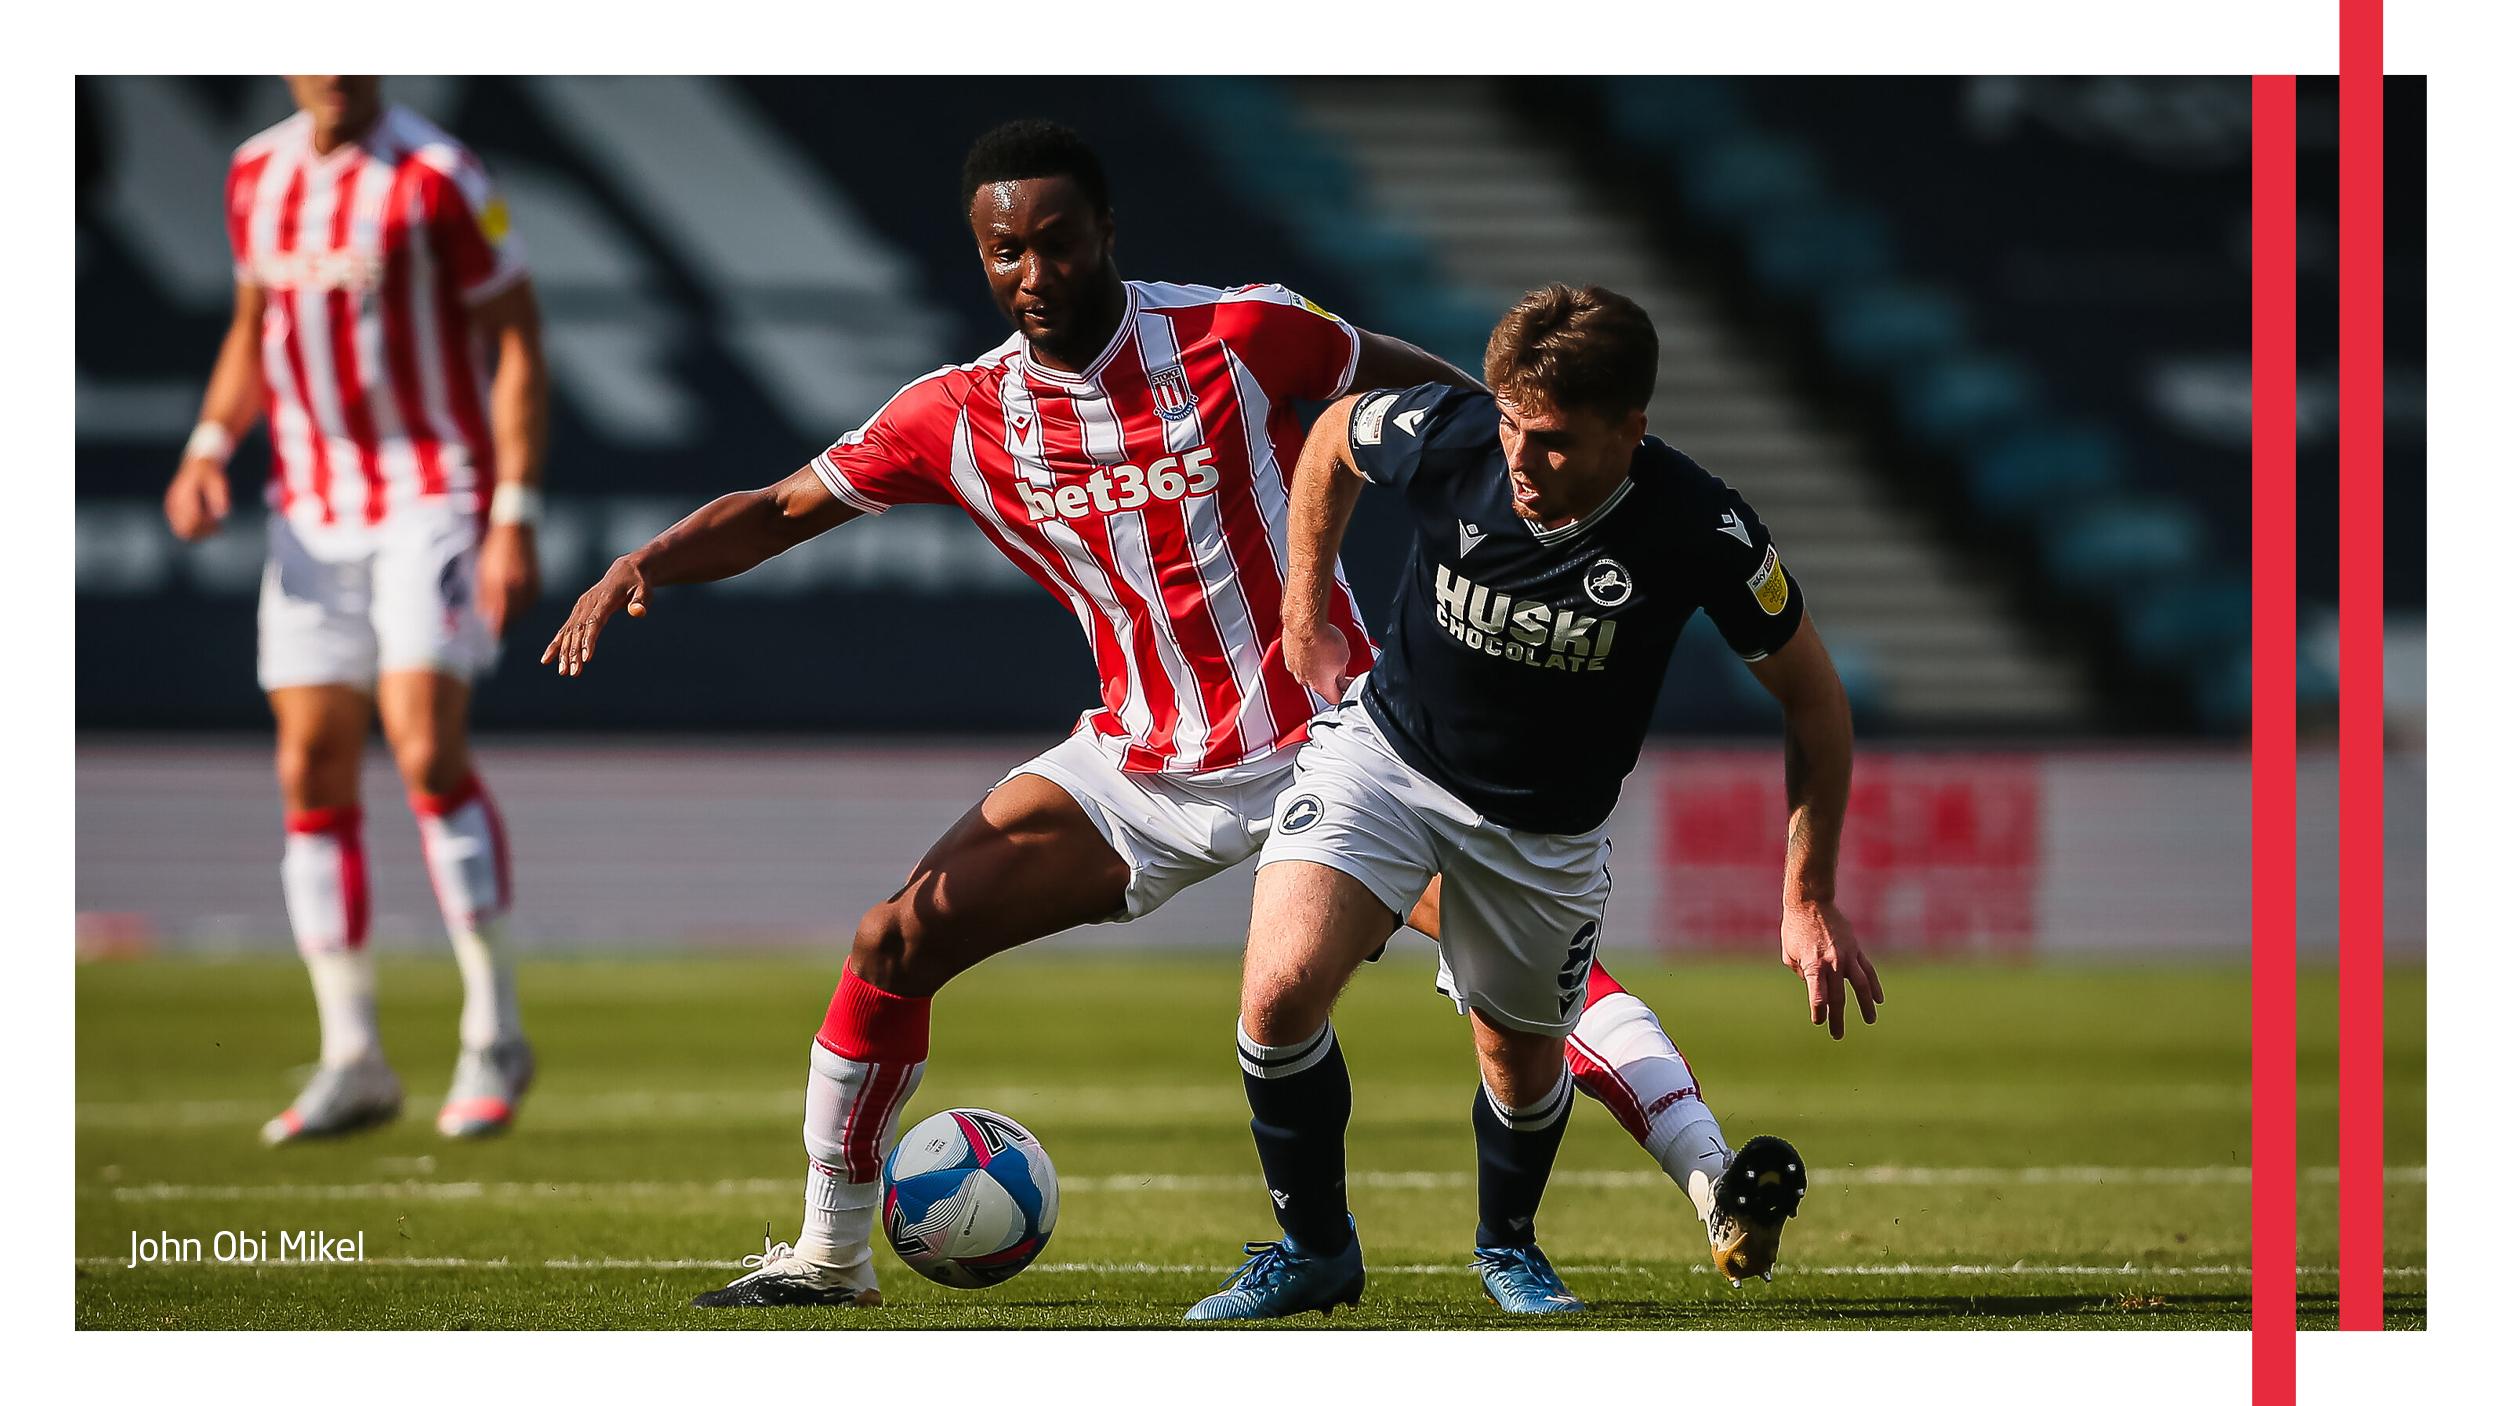 'He's Been Getting Up To Speed'- Smith Thumbs Up Mikel  For Impessive Start  At Stoke City